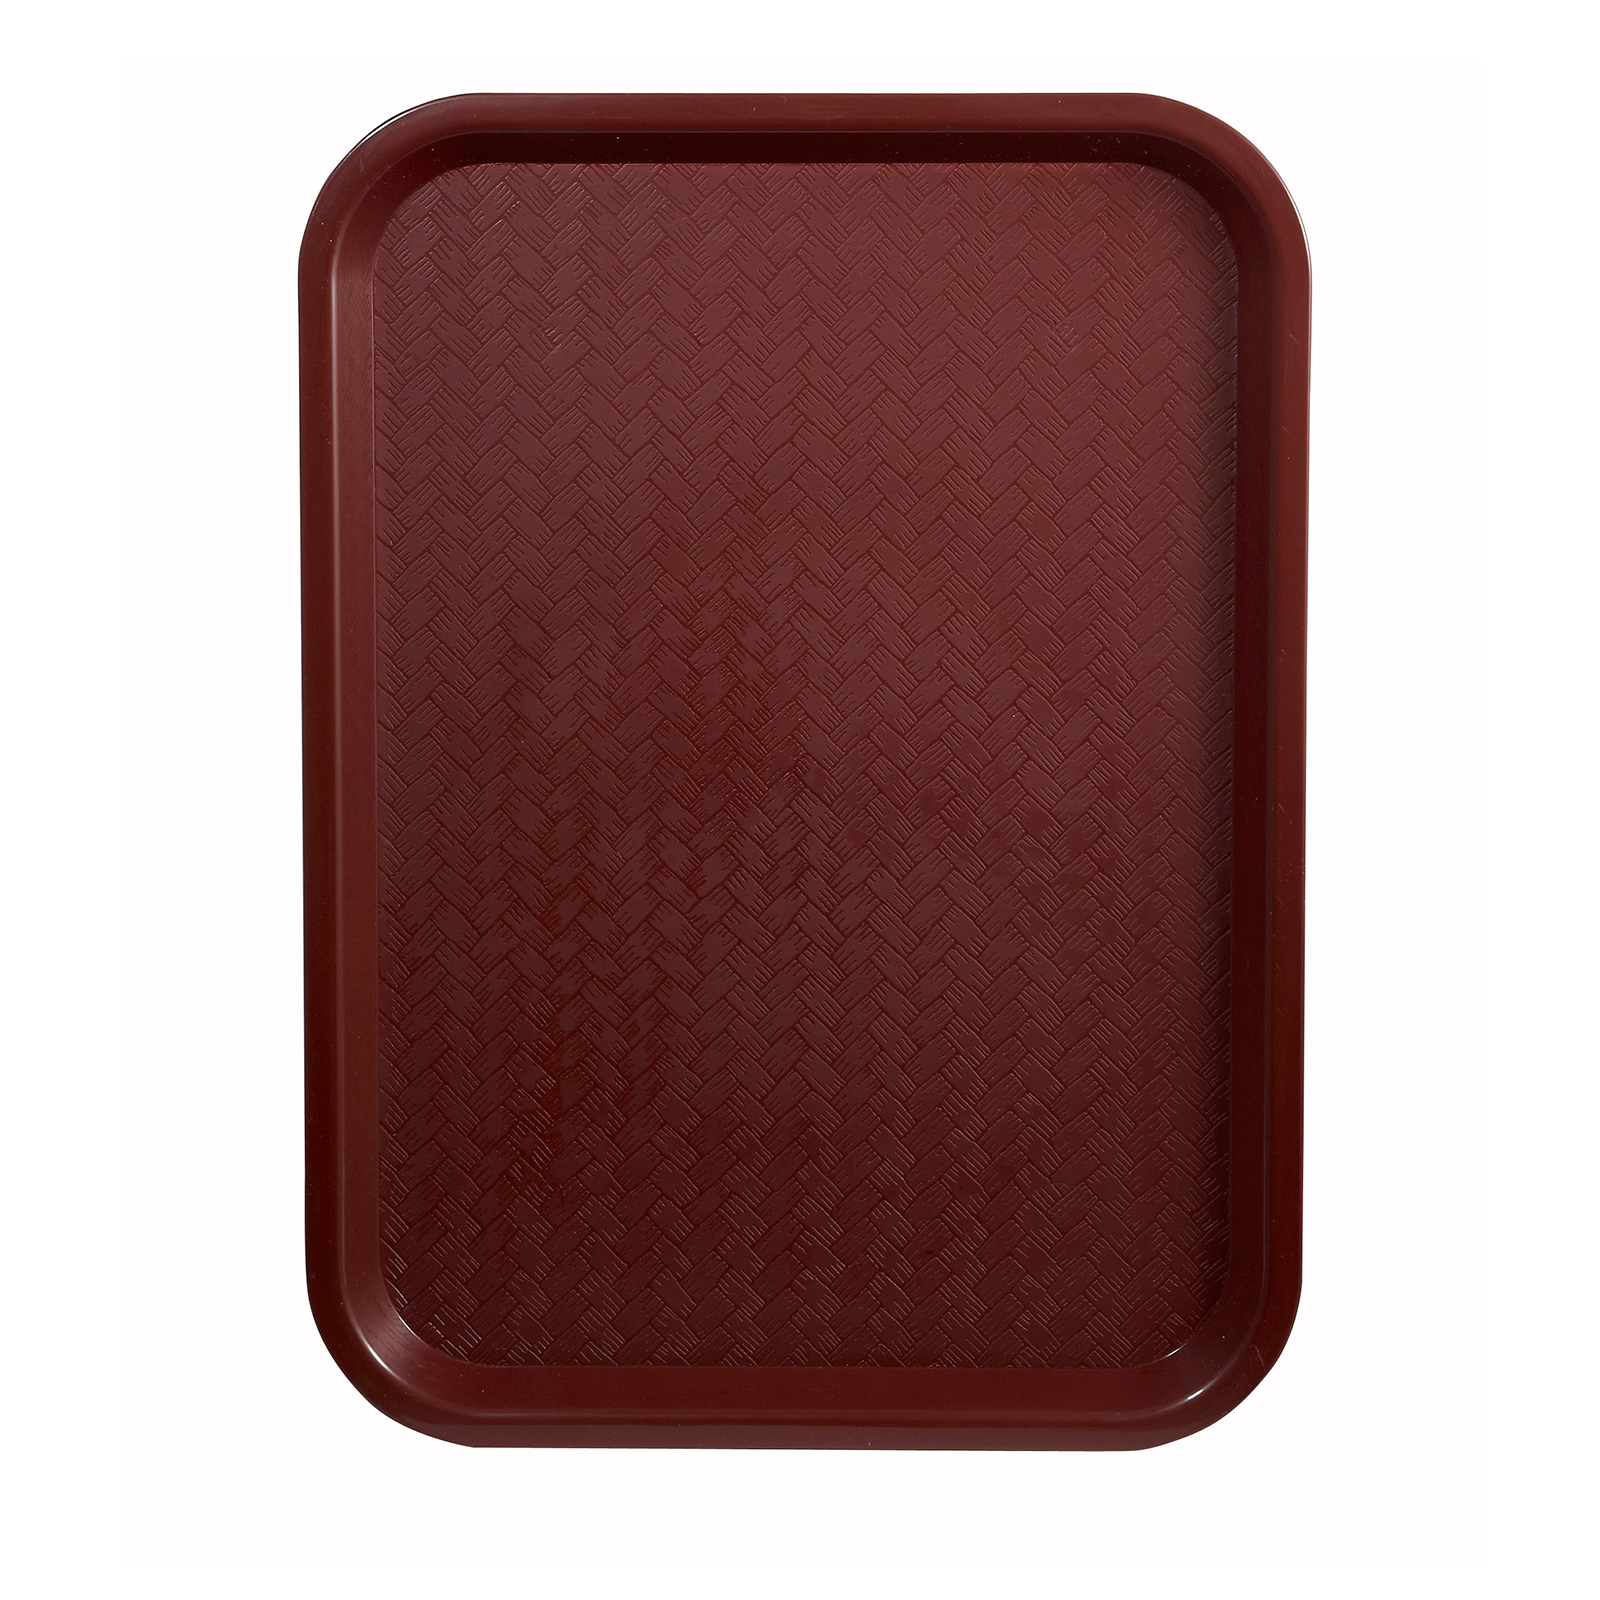 Winco FFT-1014U tray, fast food